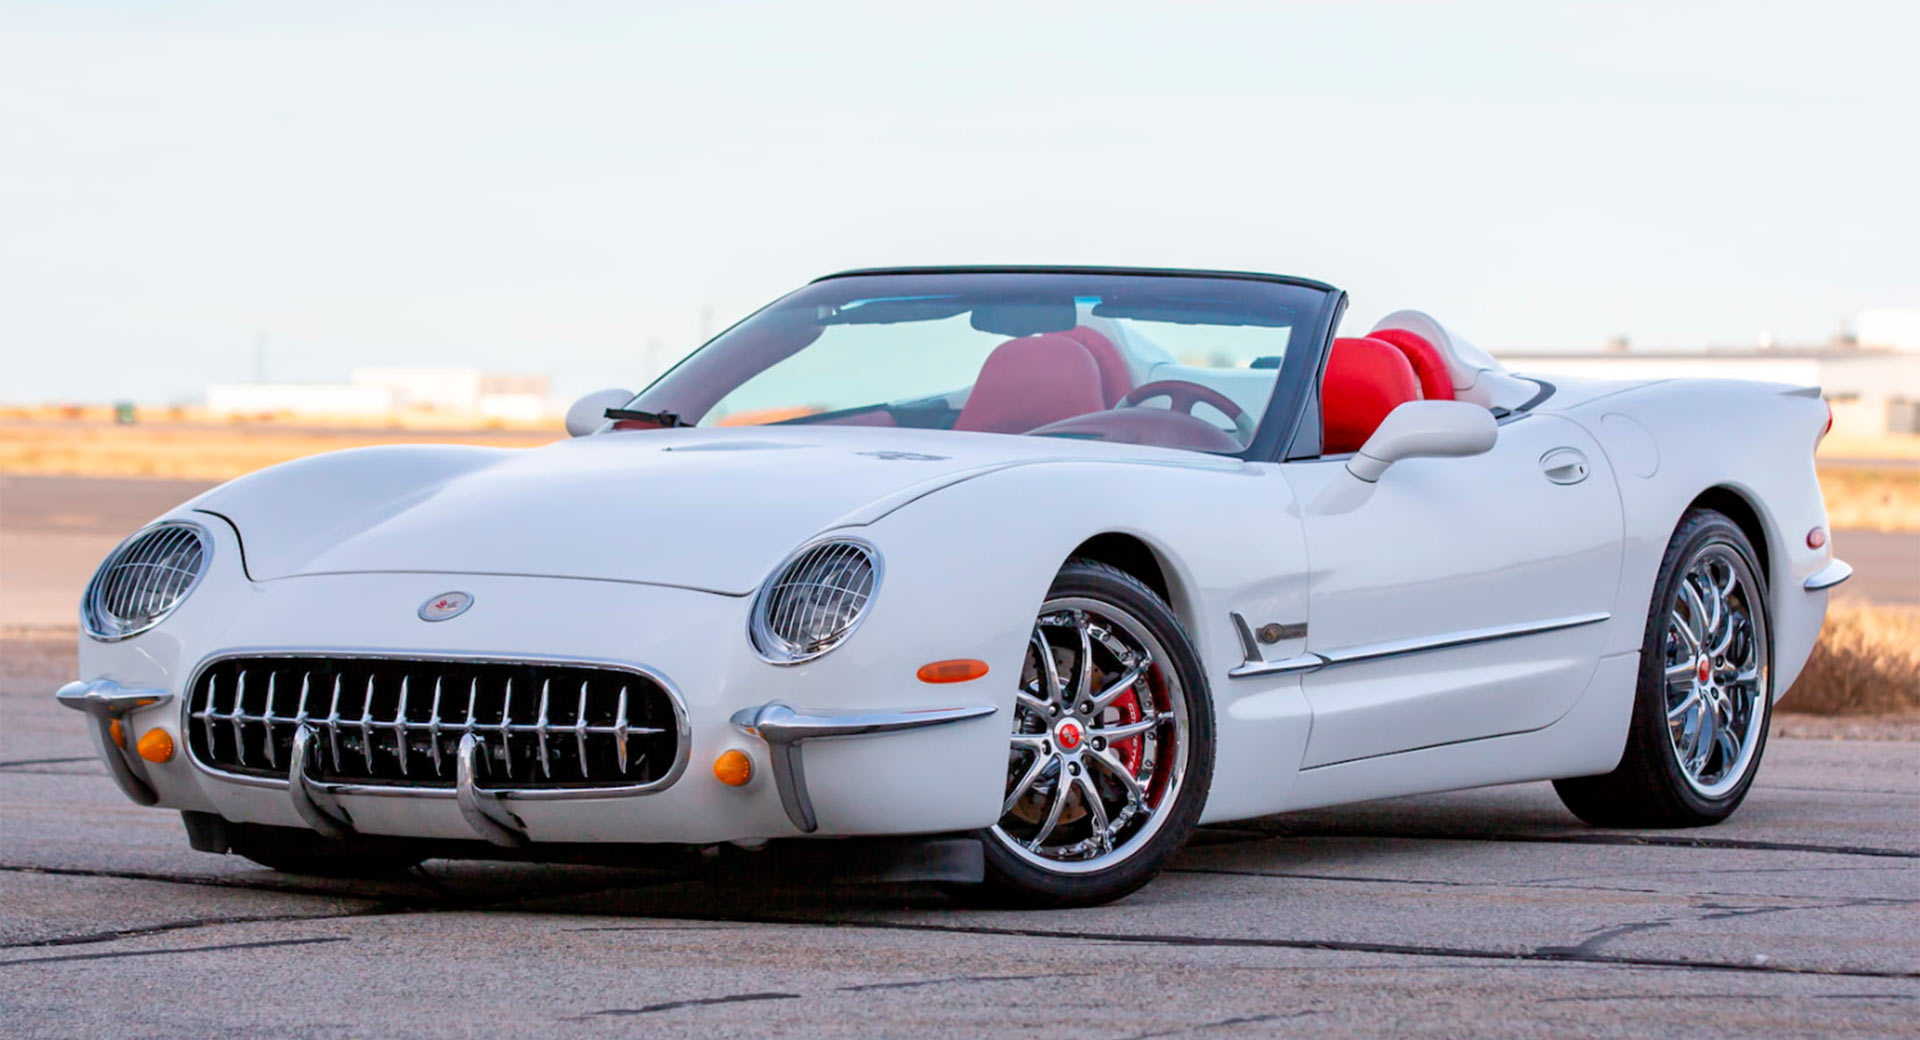 Created by Advanced Automotive Tech (AAT) from Michigan, these two unique restomods based on the 2003 Chevrolet C5 Corvette will go on sale this Friday. Both convertibles have been stylized to look like the first-generation model dating back to 1953.